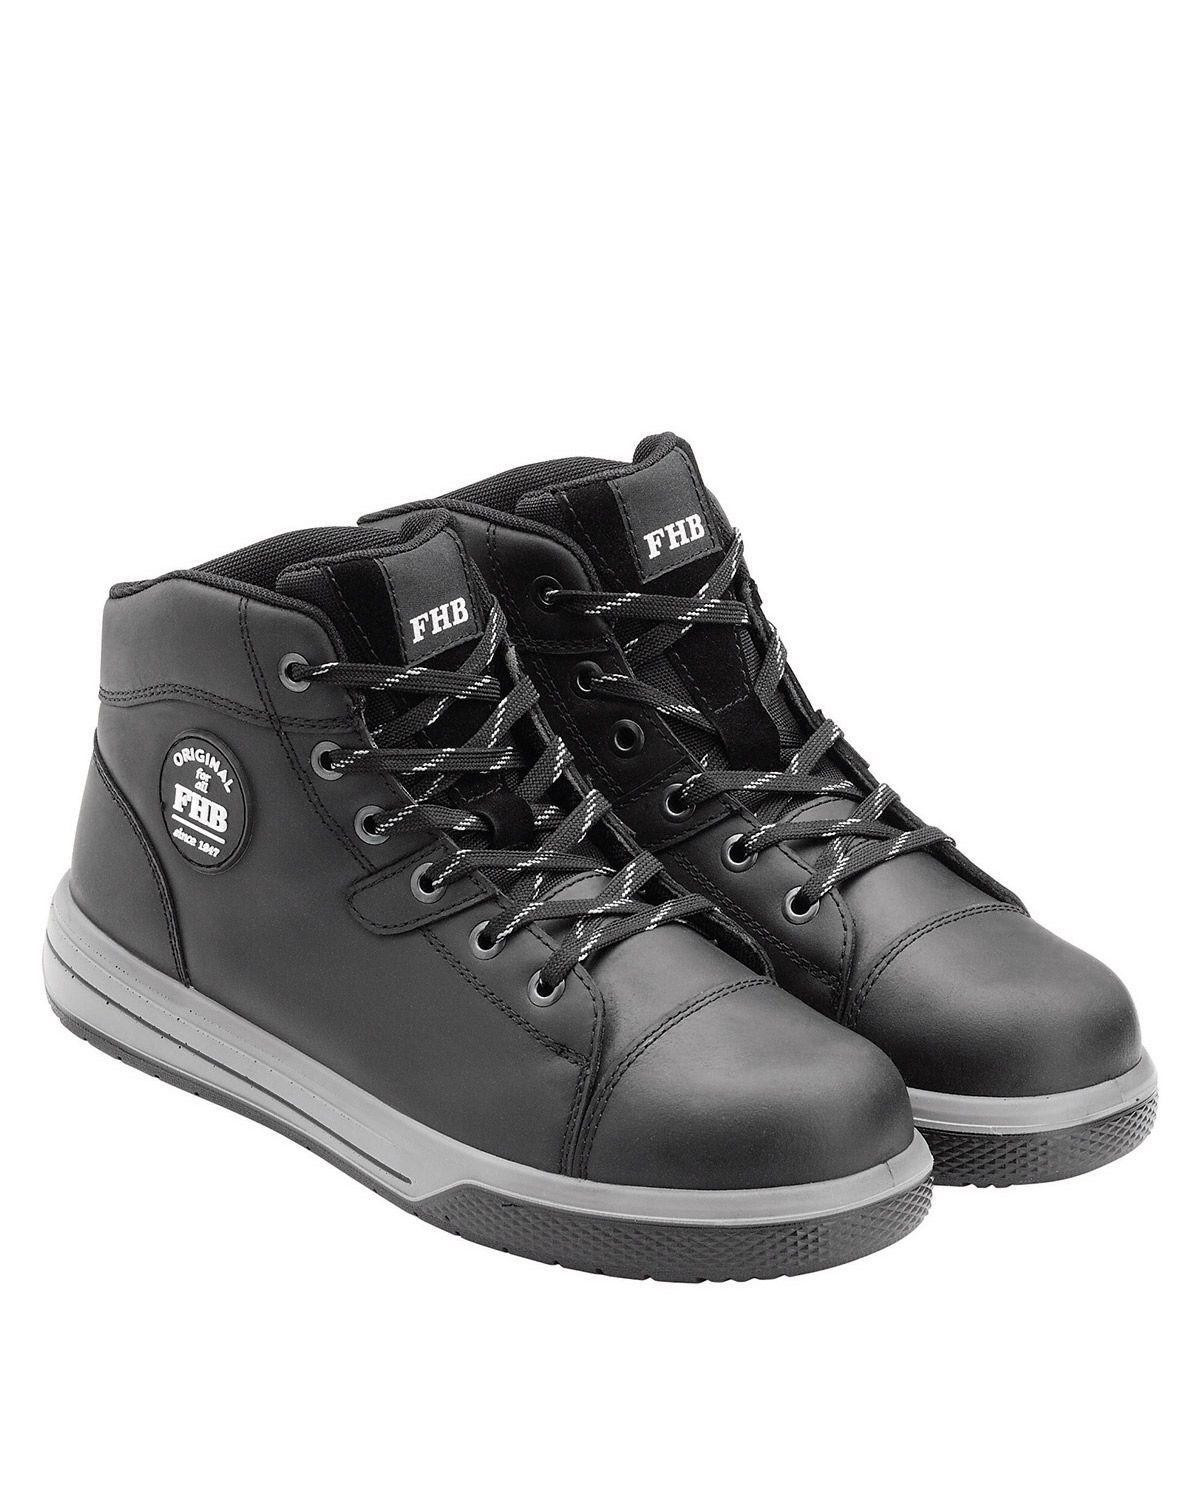 Image of   FHB High Top Sikkerhedssko - Linus (Sort, 46 EU / 12 UK)